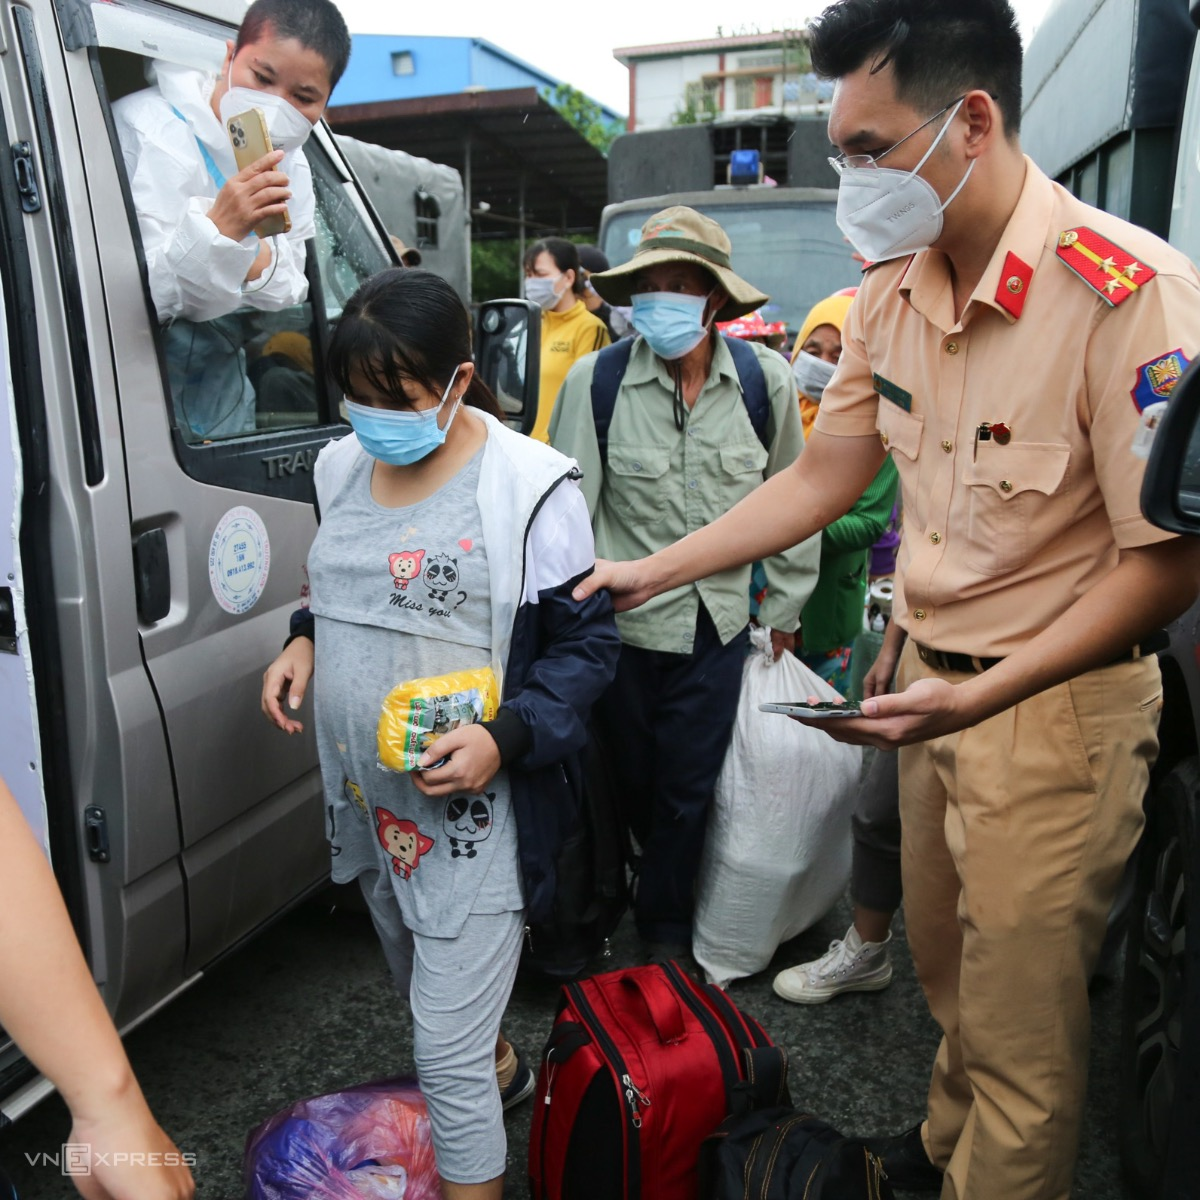 Nguyen Thi Thanh Huyen is in her 8th month of pregnancy and was taken home by a free bus in Binh Chanh. Nearly 20 buses, coaches and vans have taken pregnant women, women and children, and the disabled, home. All of them must be tested negative with the coronavirus before departure.